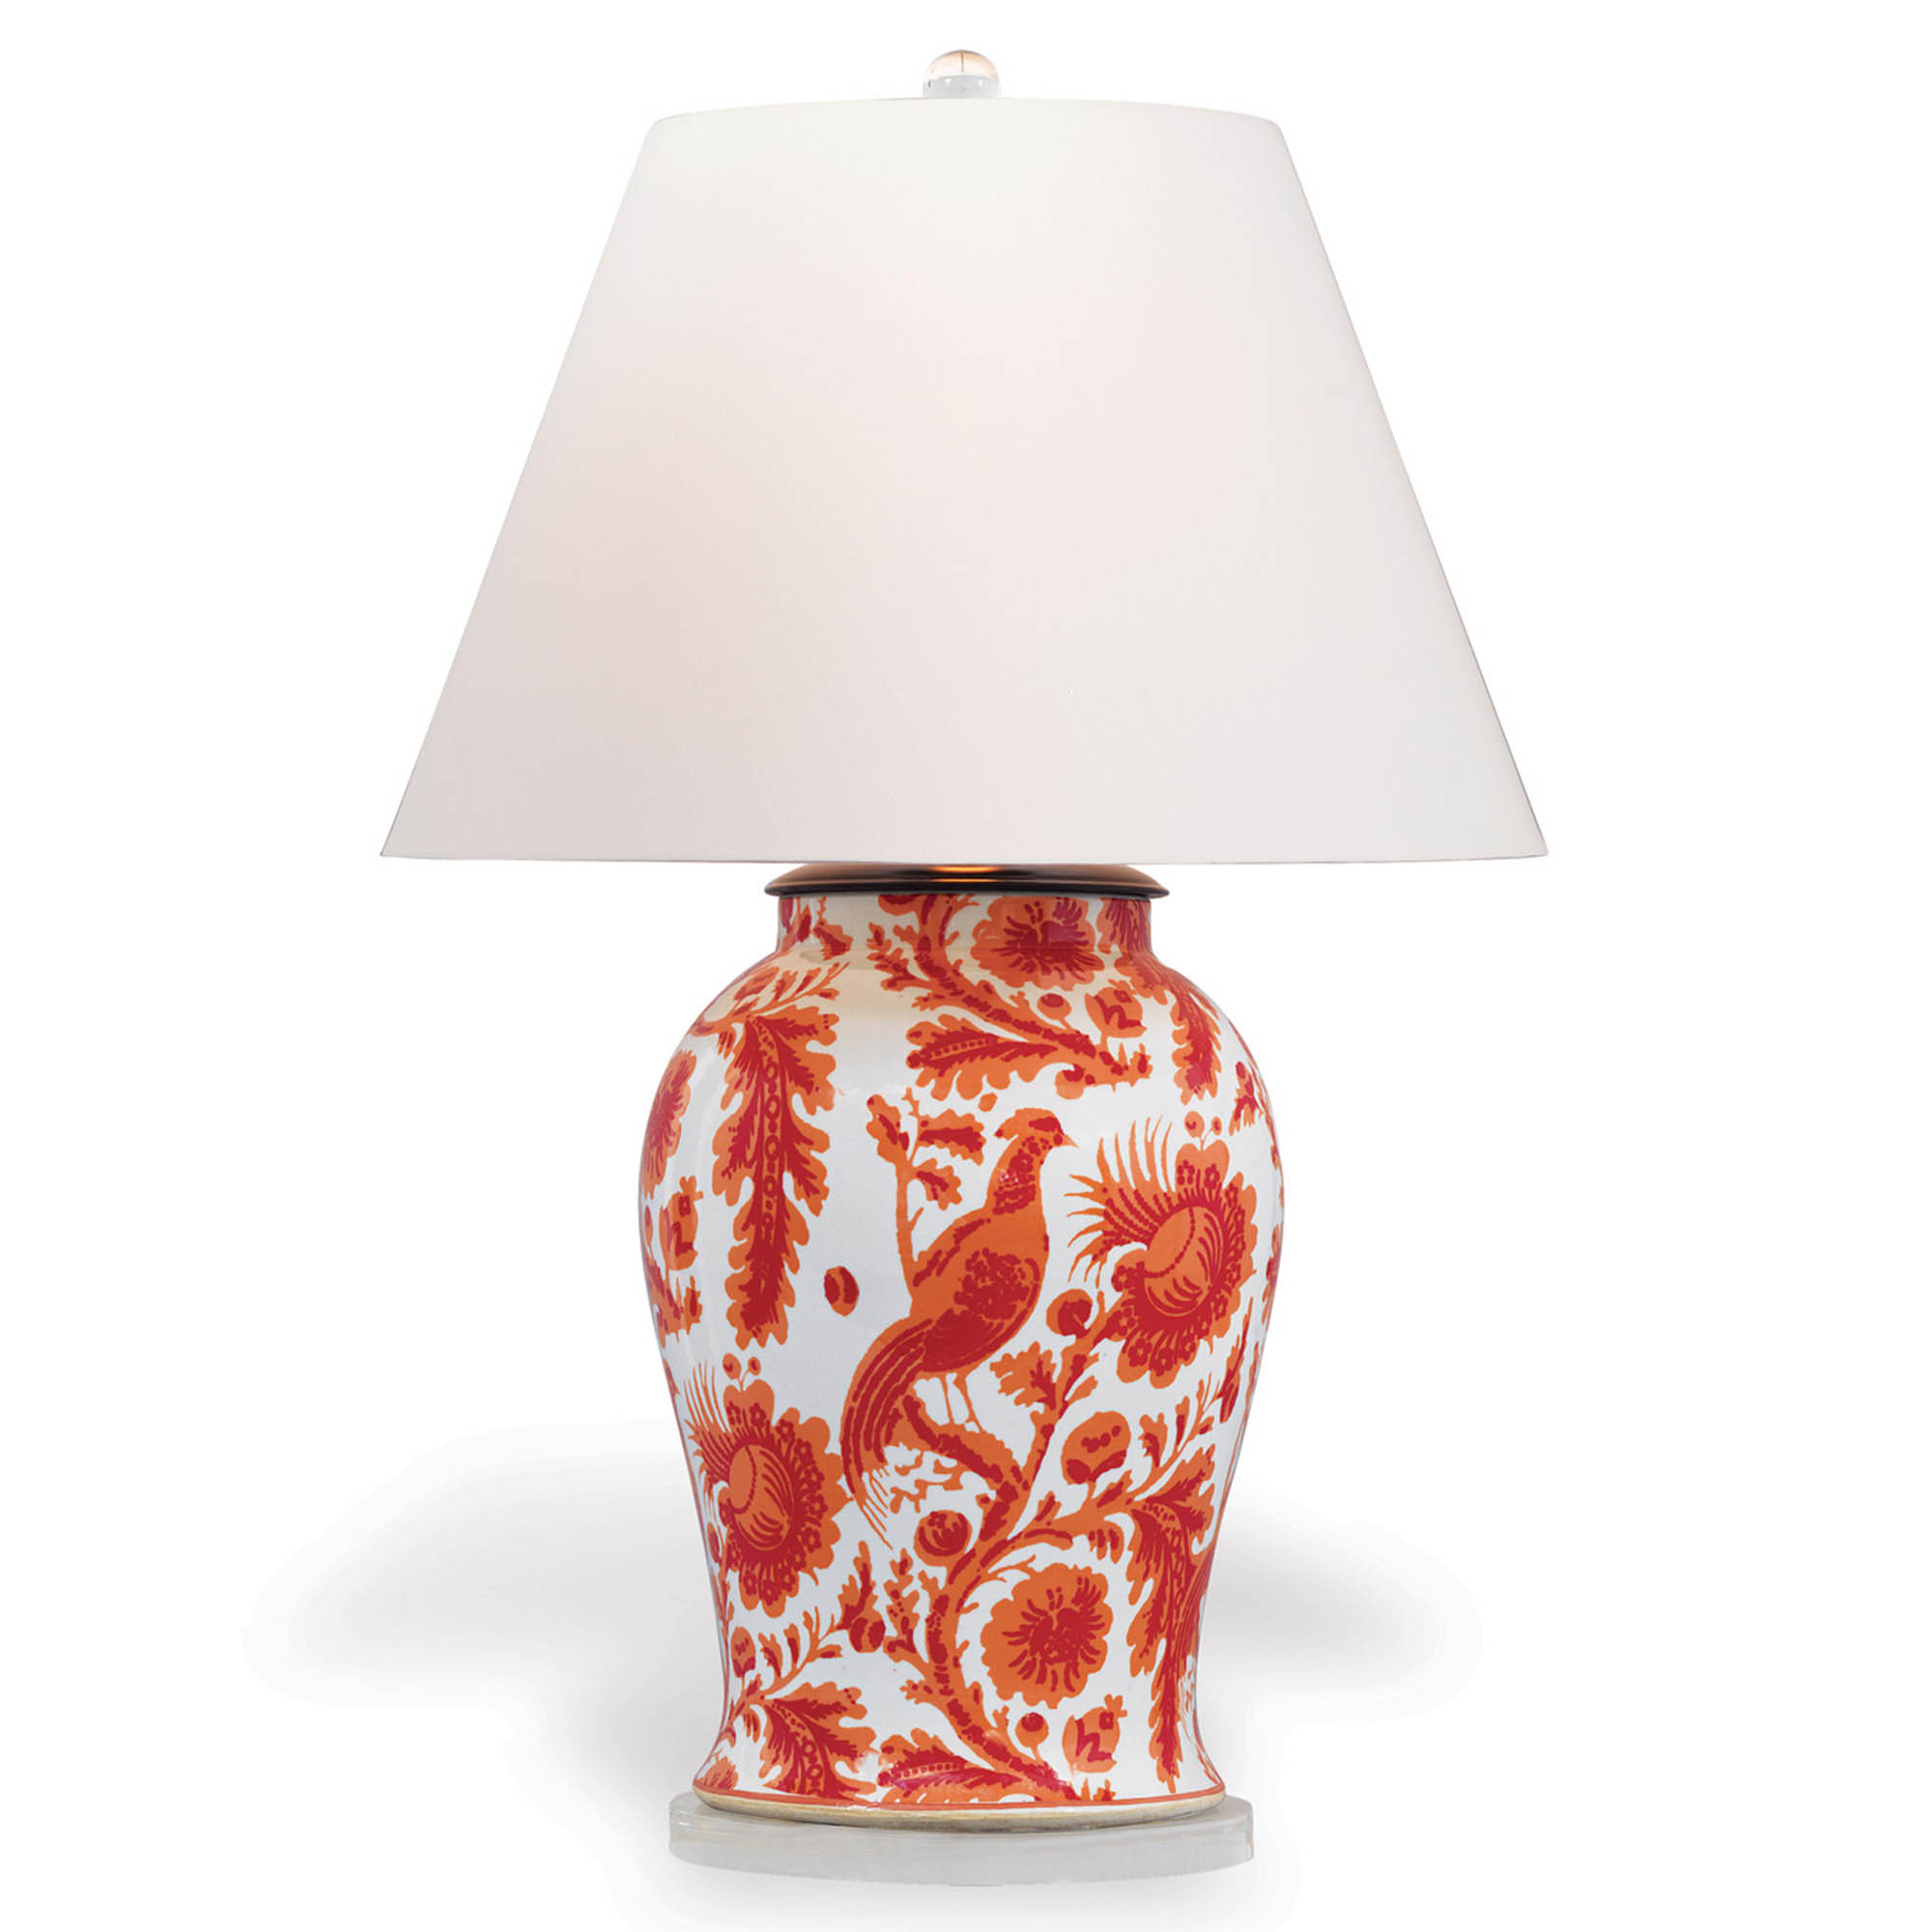 Adrial Global Orange Floral Bird Porcelain Table Lamp